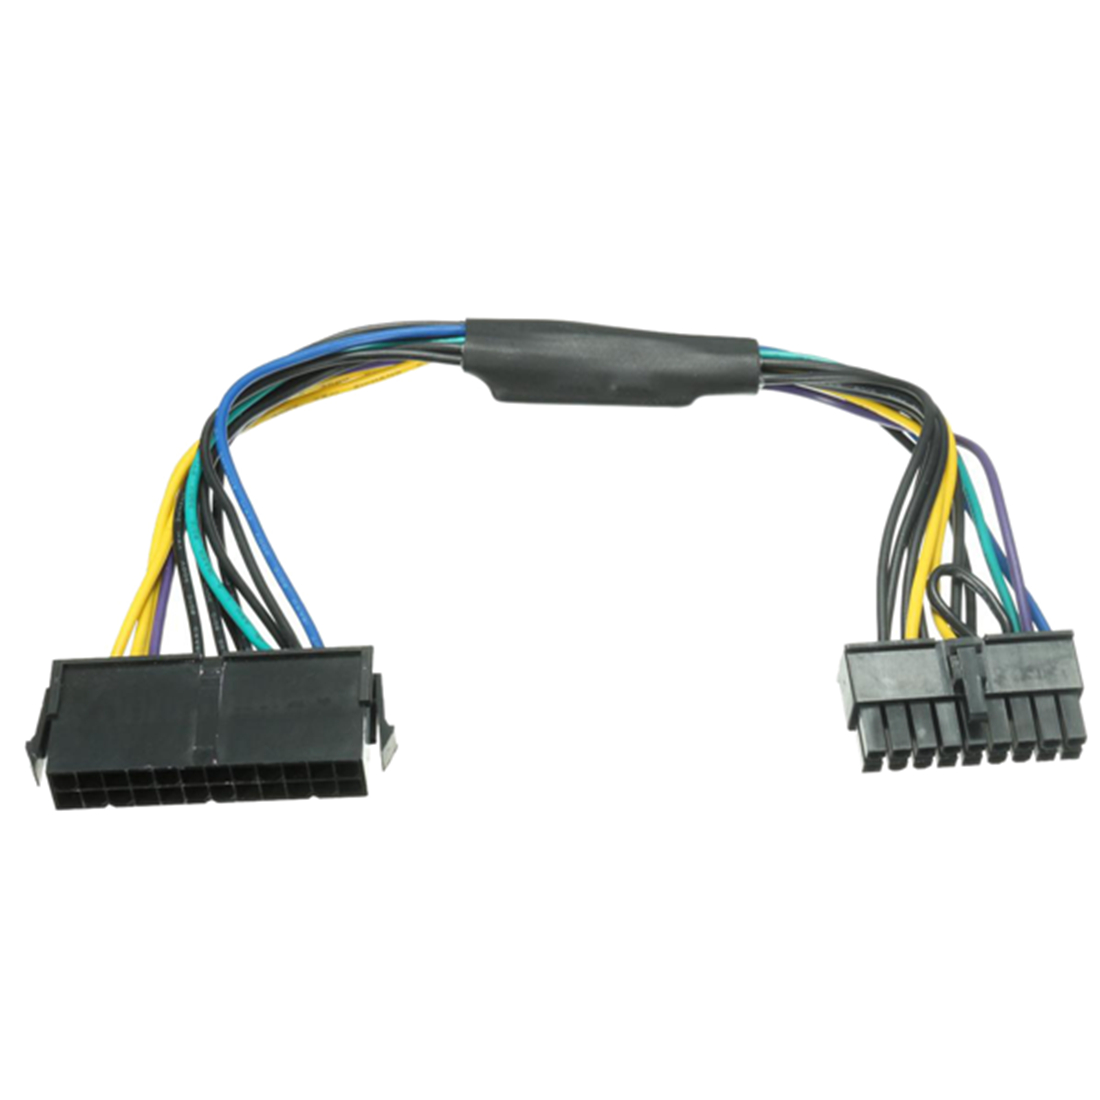 US $4 56 26% OFF|FFYY ATX 24pin to Motherboard 18pin Adapter Power Supply  Cable 18AWG for HP Z420 Z620-in Power Supplys from Consumer Electronics on